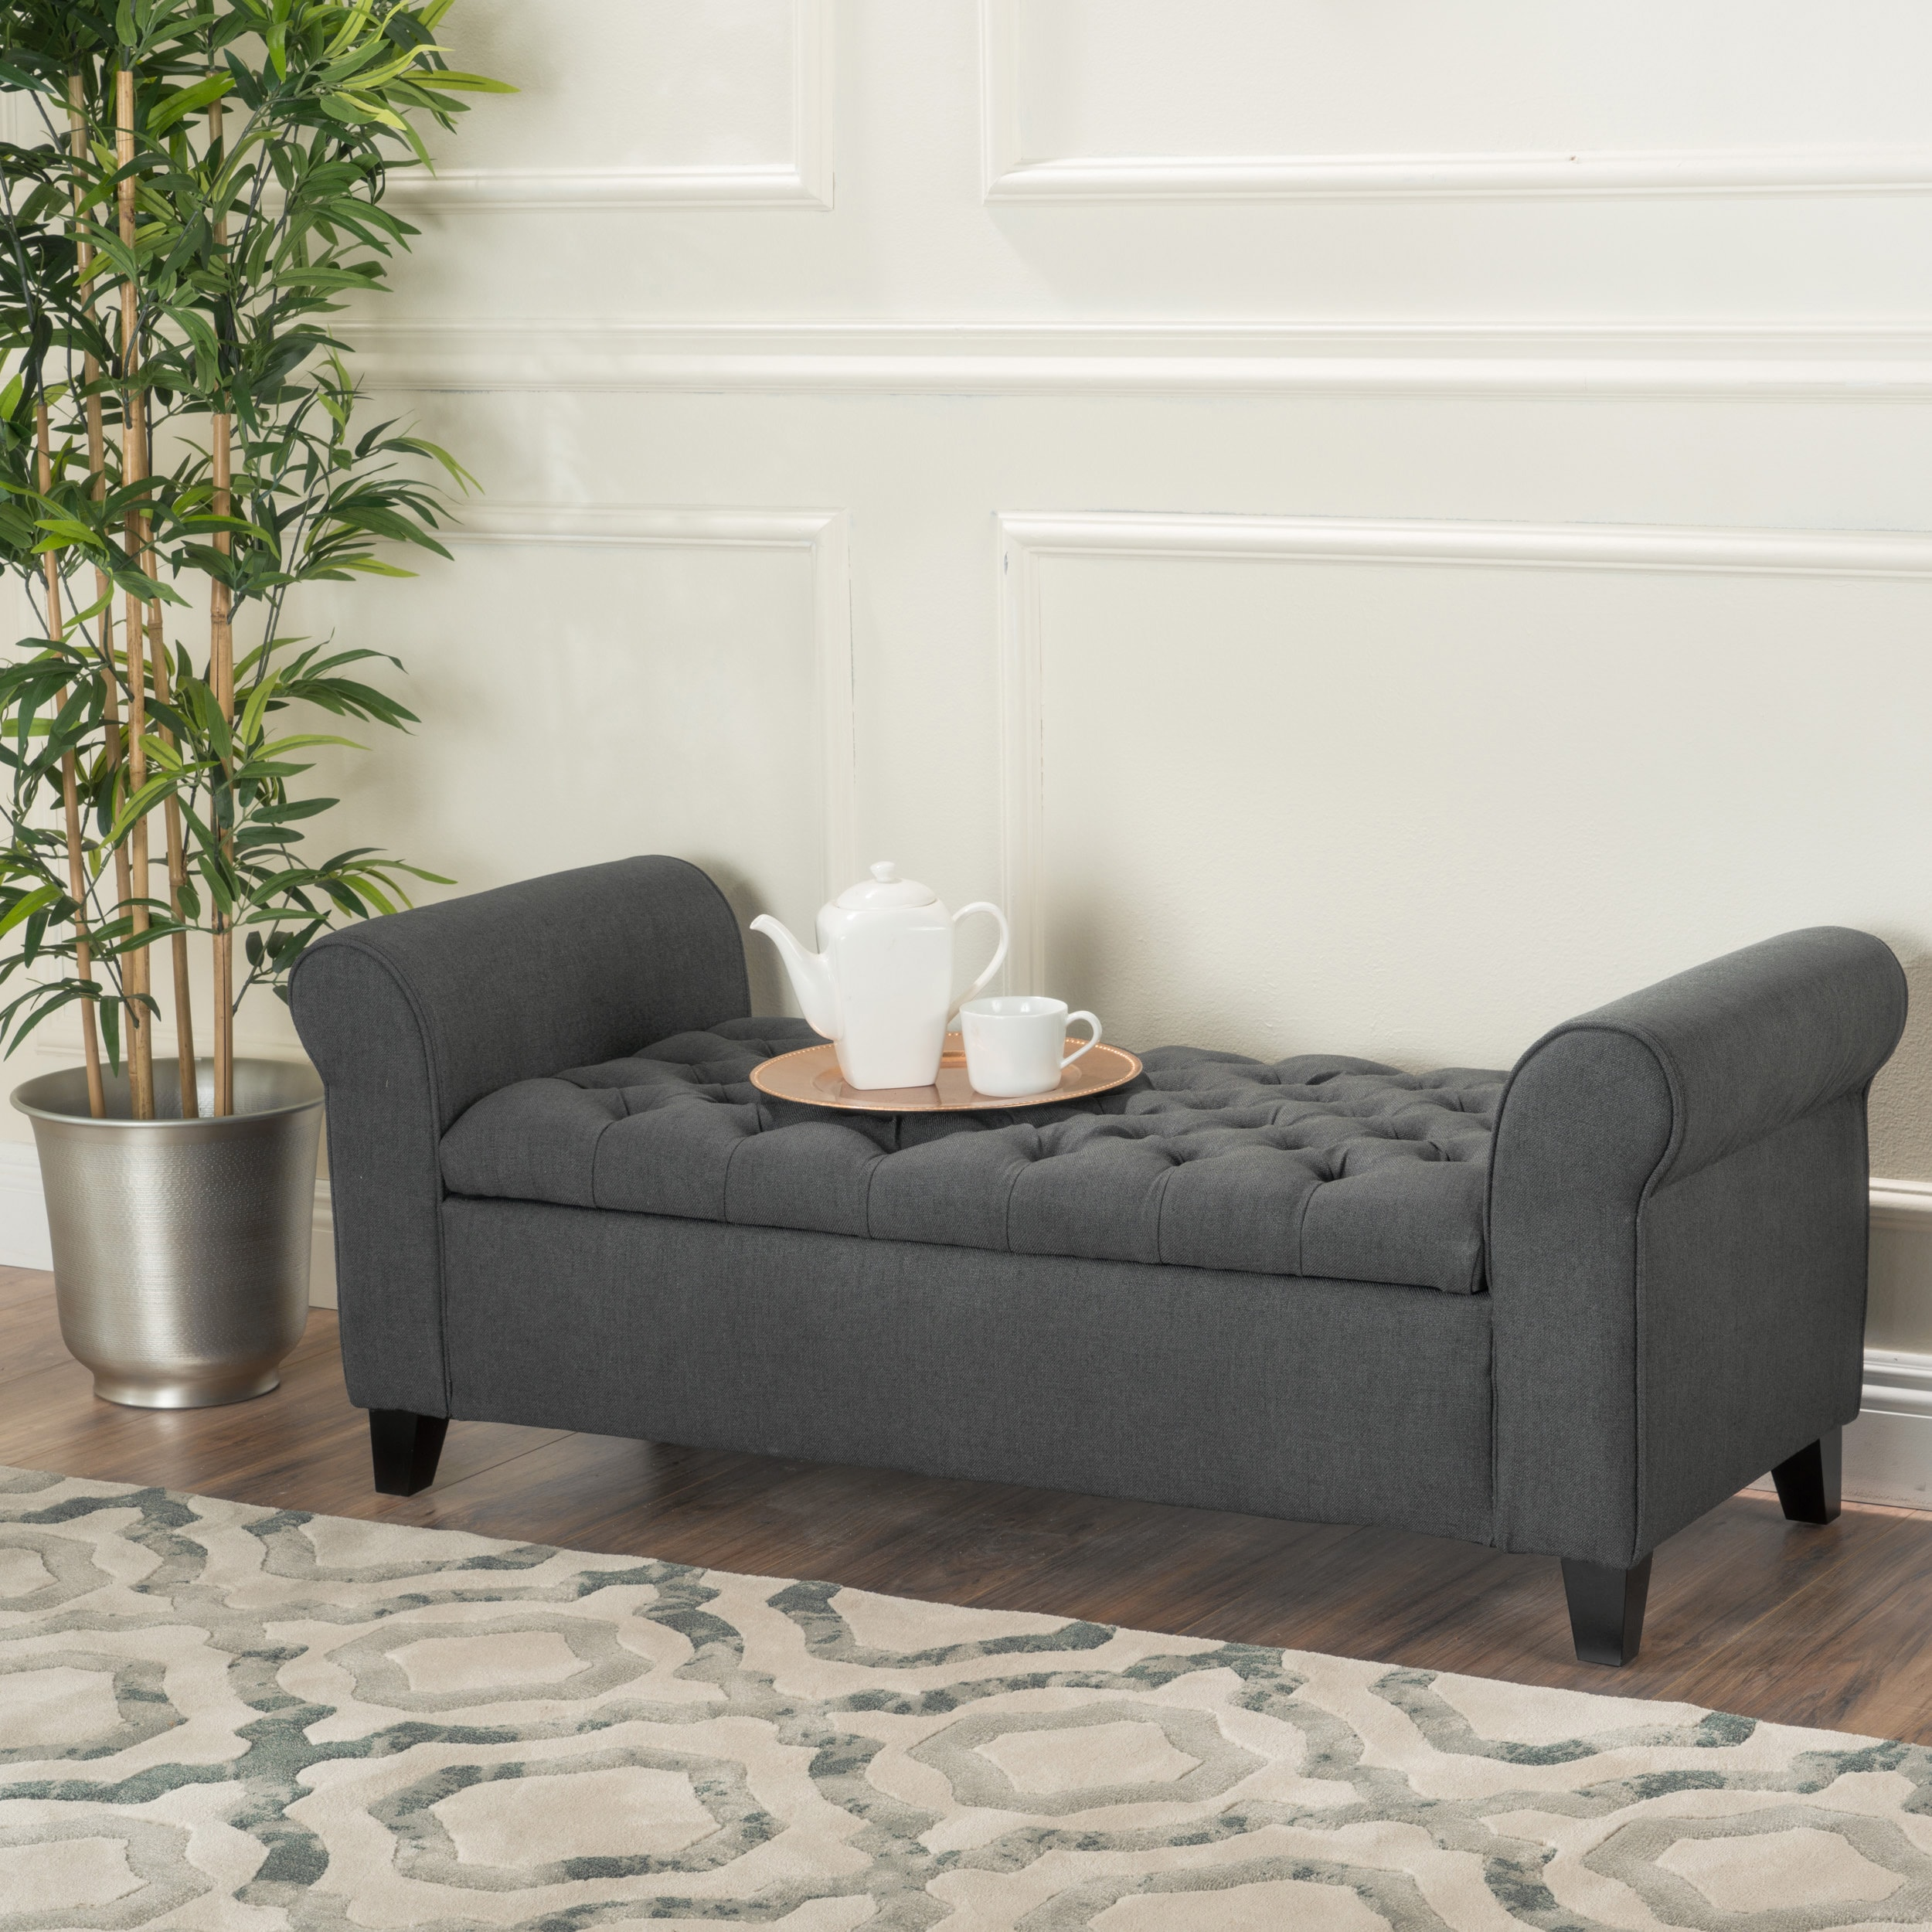 Ottoman Bench Tufted Dark Grey Transitional Storage Living